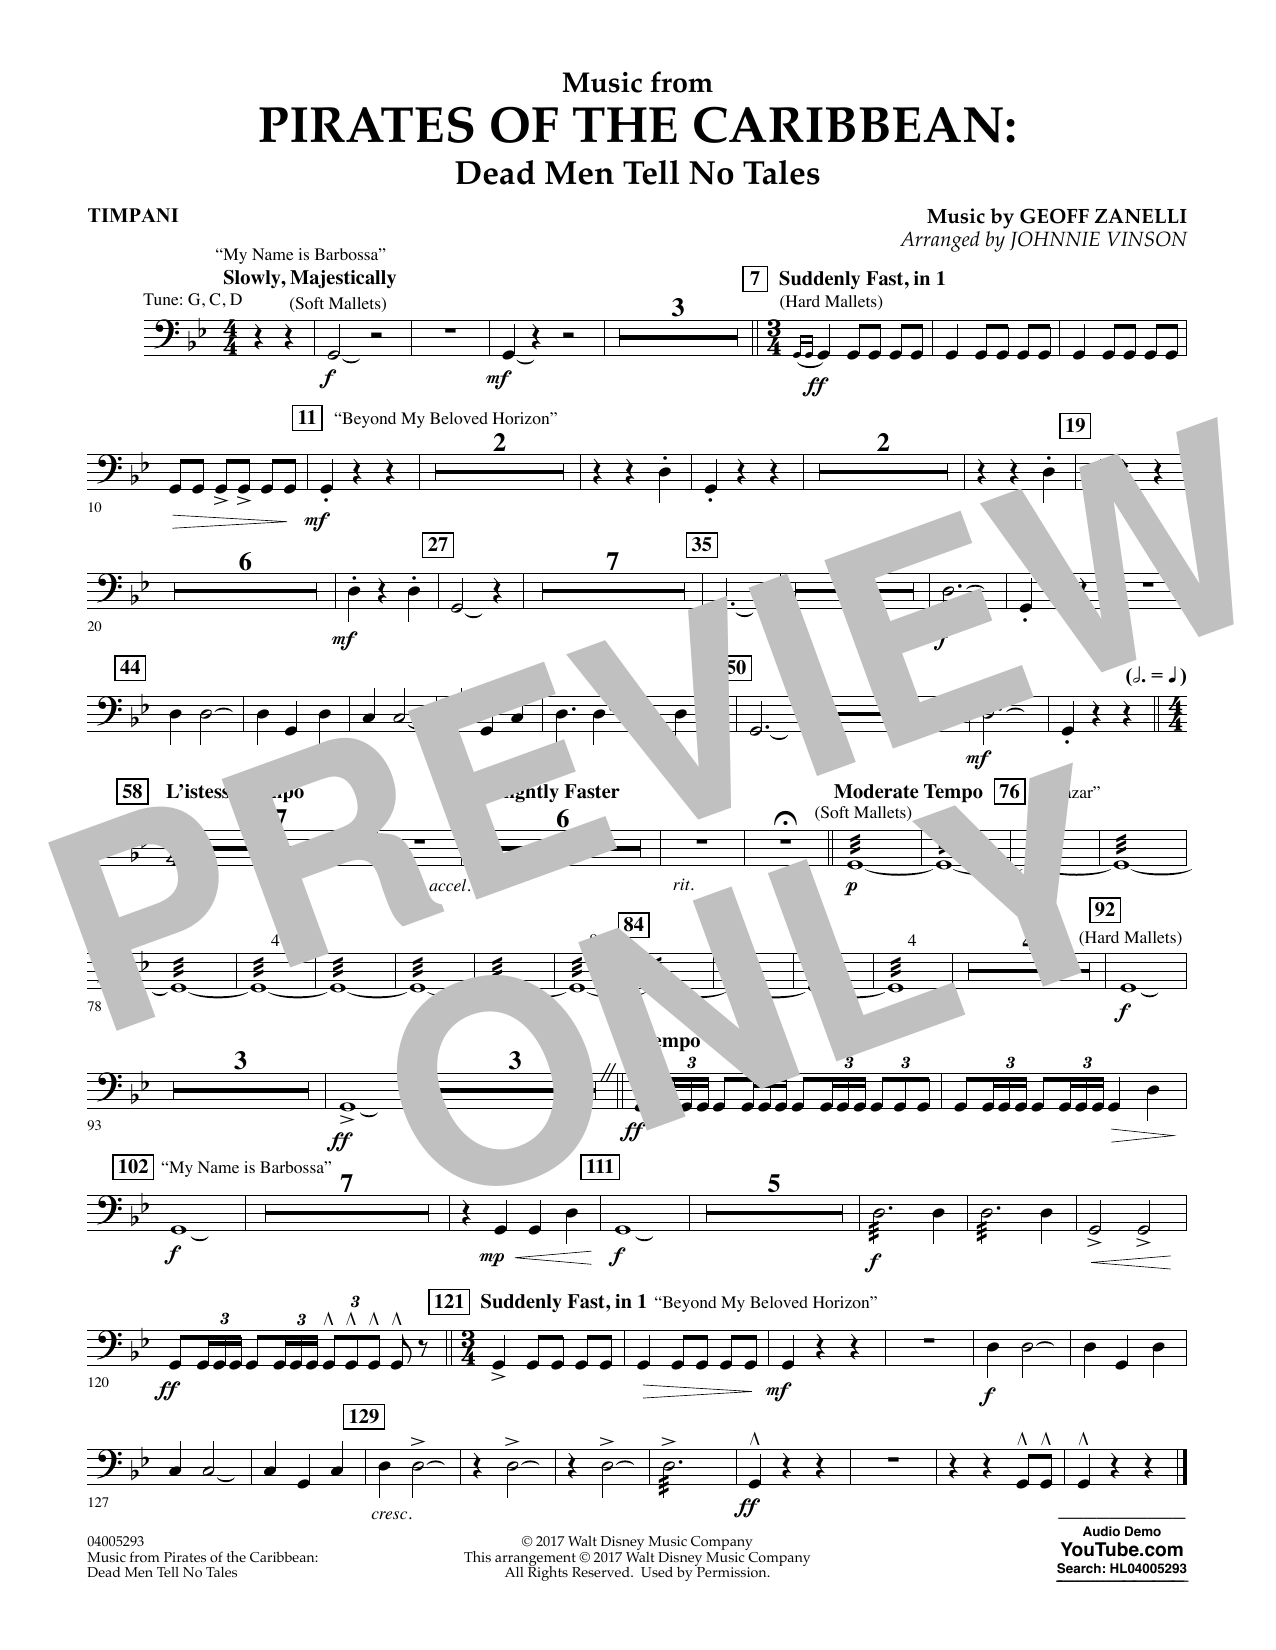 Music from Pirates of the Caribbean: Dead Men Tell No Tales - Timpani (Flex-Band)